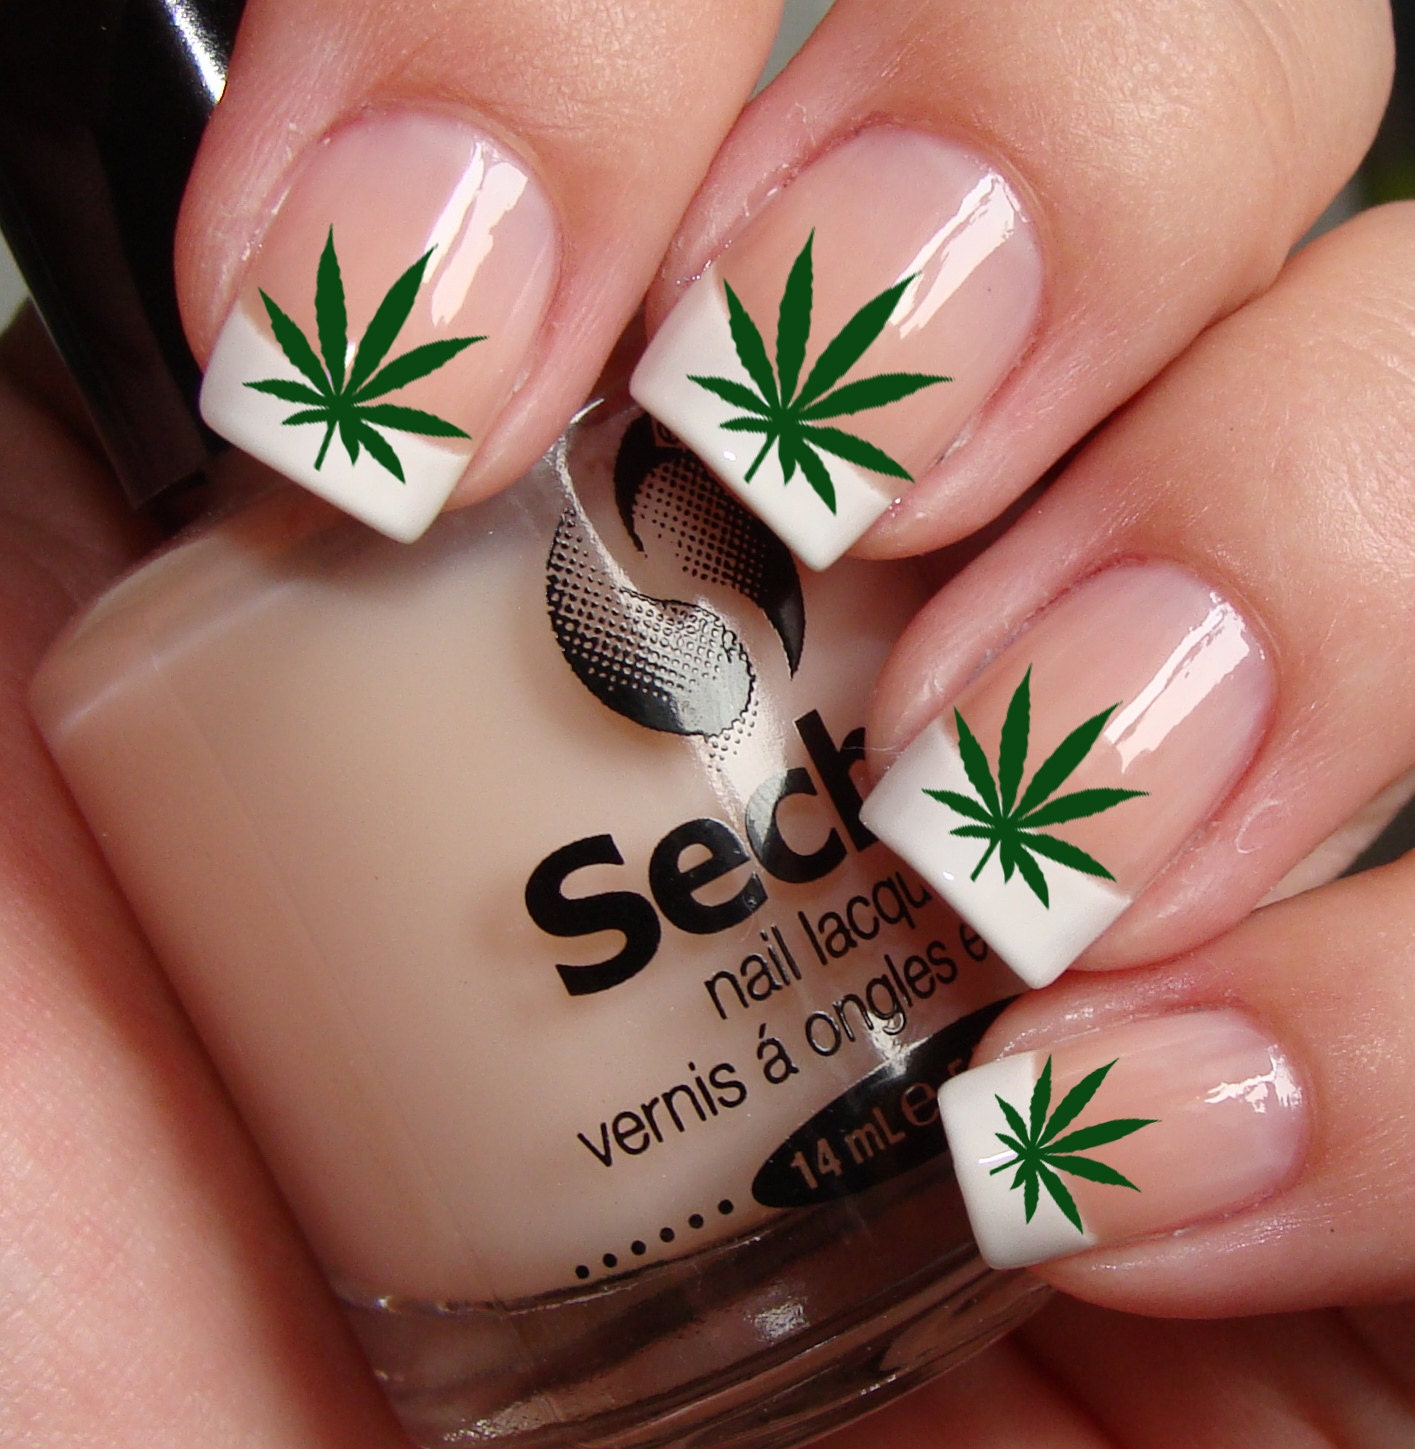 60 Pot Leaves Marijuana Nail Art Salon Results By Northofsalem